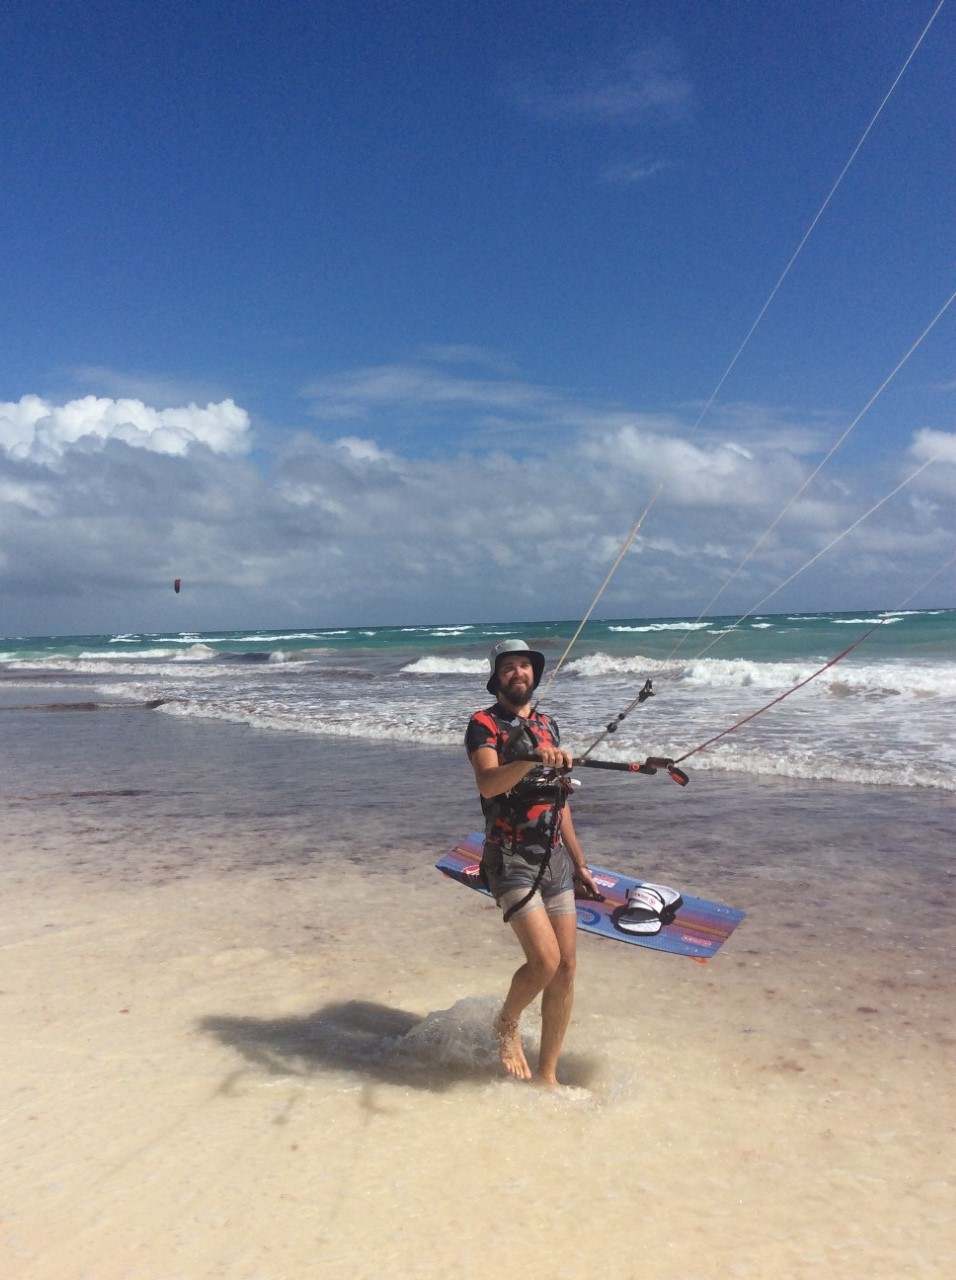 Kitesurfing on Tulum Beach, Mexico